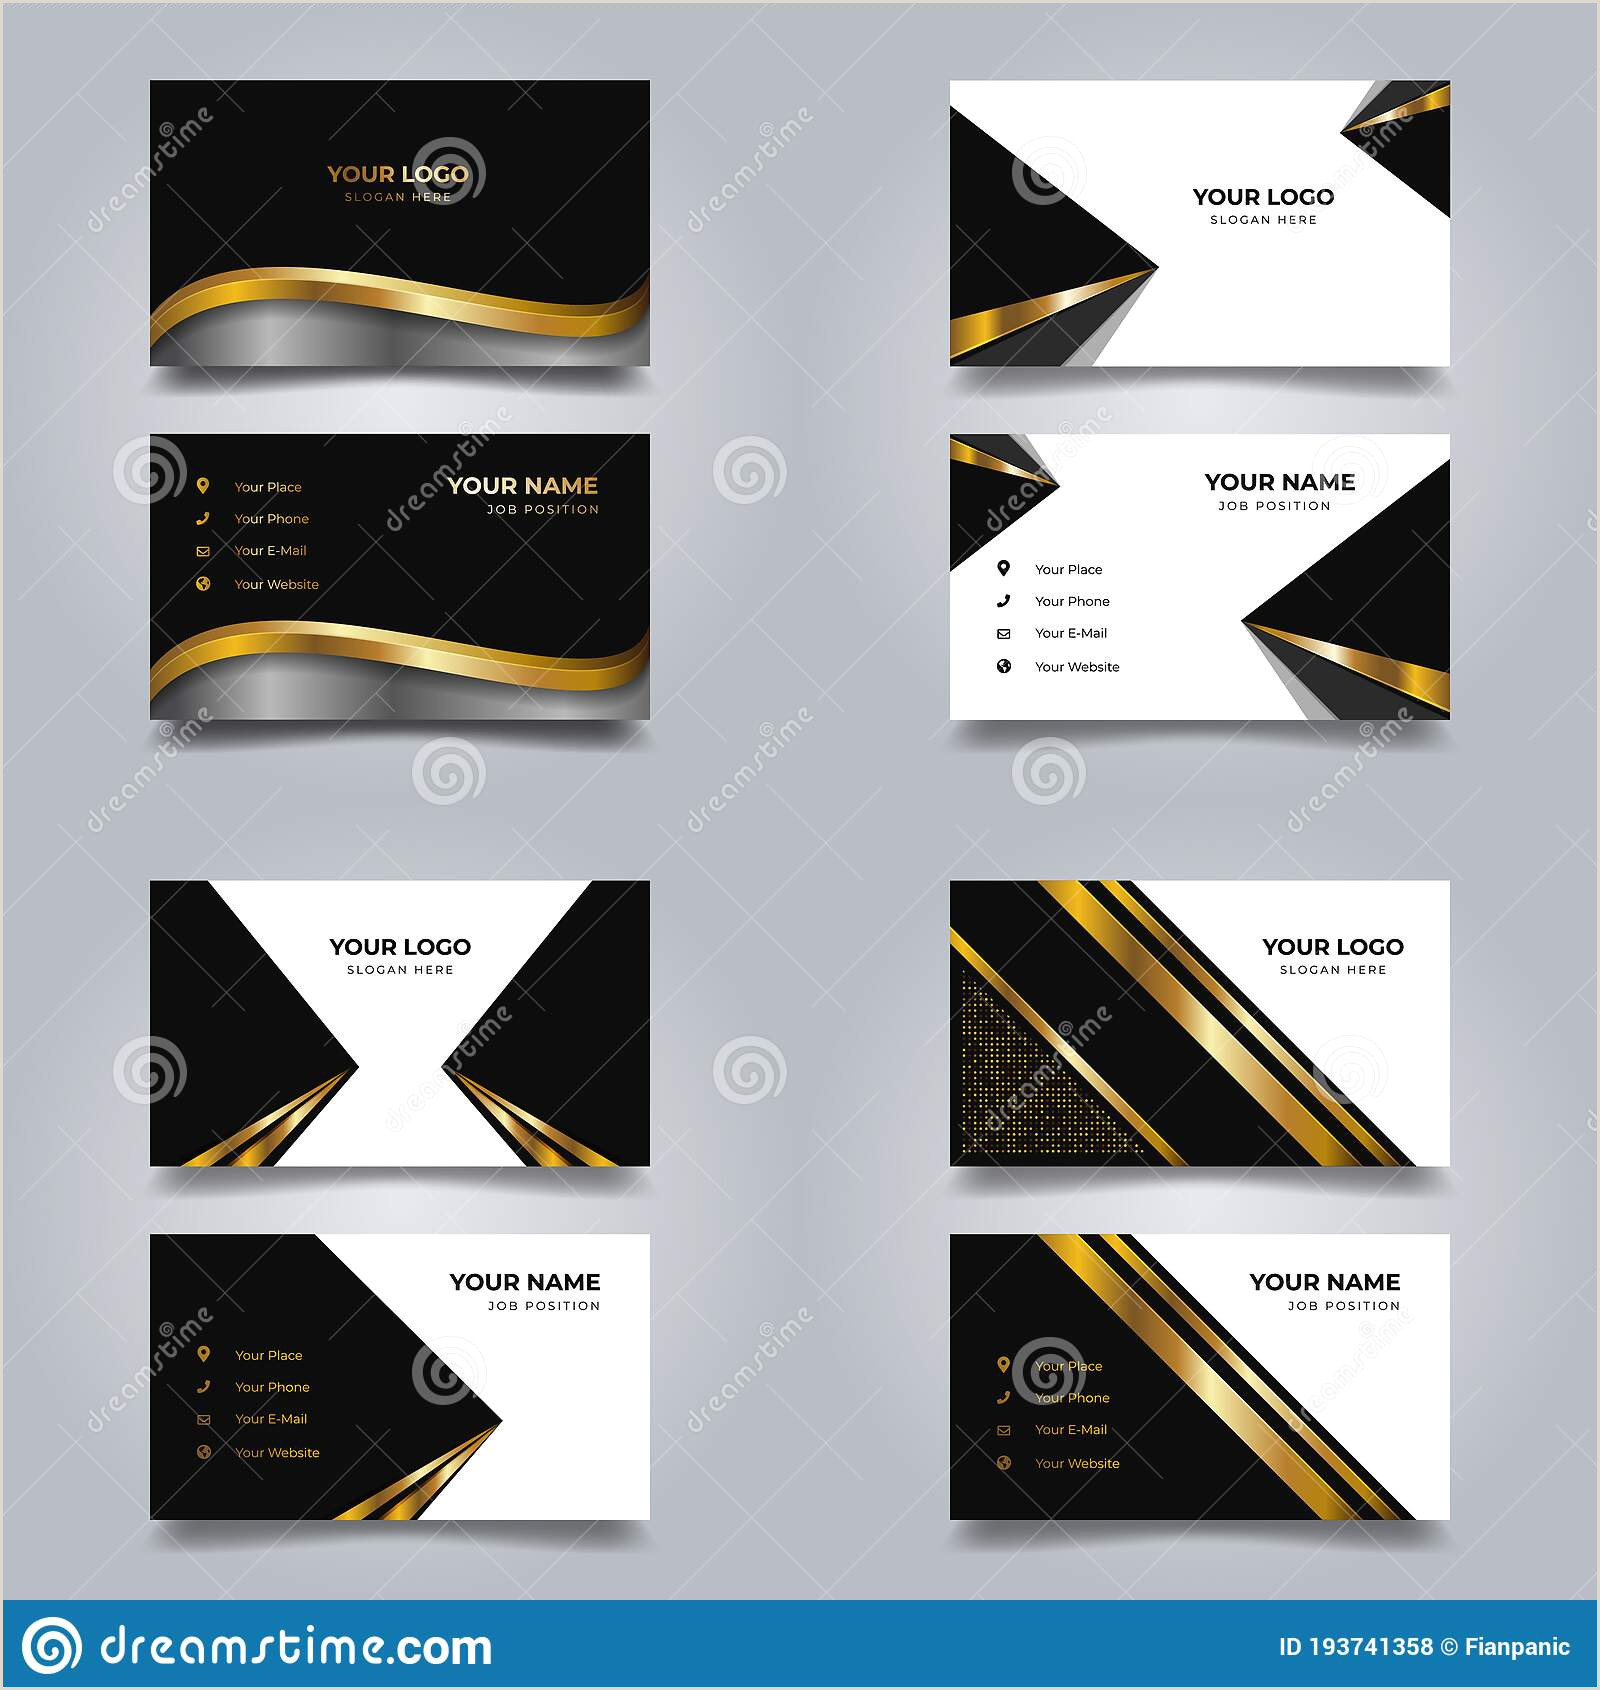 Painting Business Card Templates Free 2 078 Business Card Paint Template S Free & Royalty